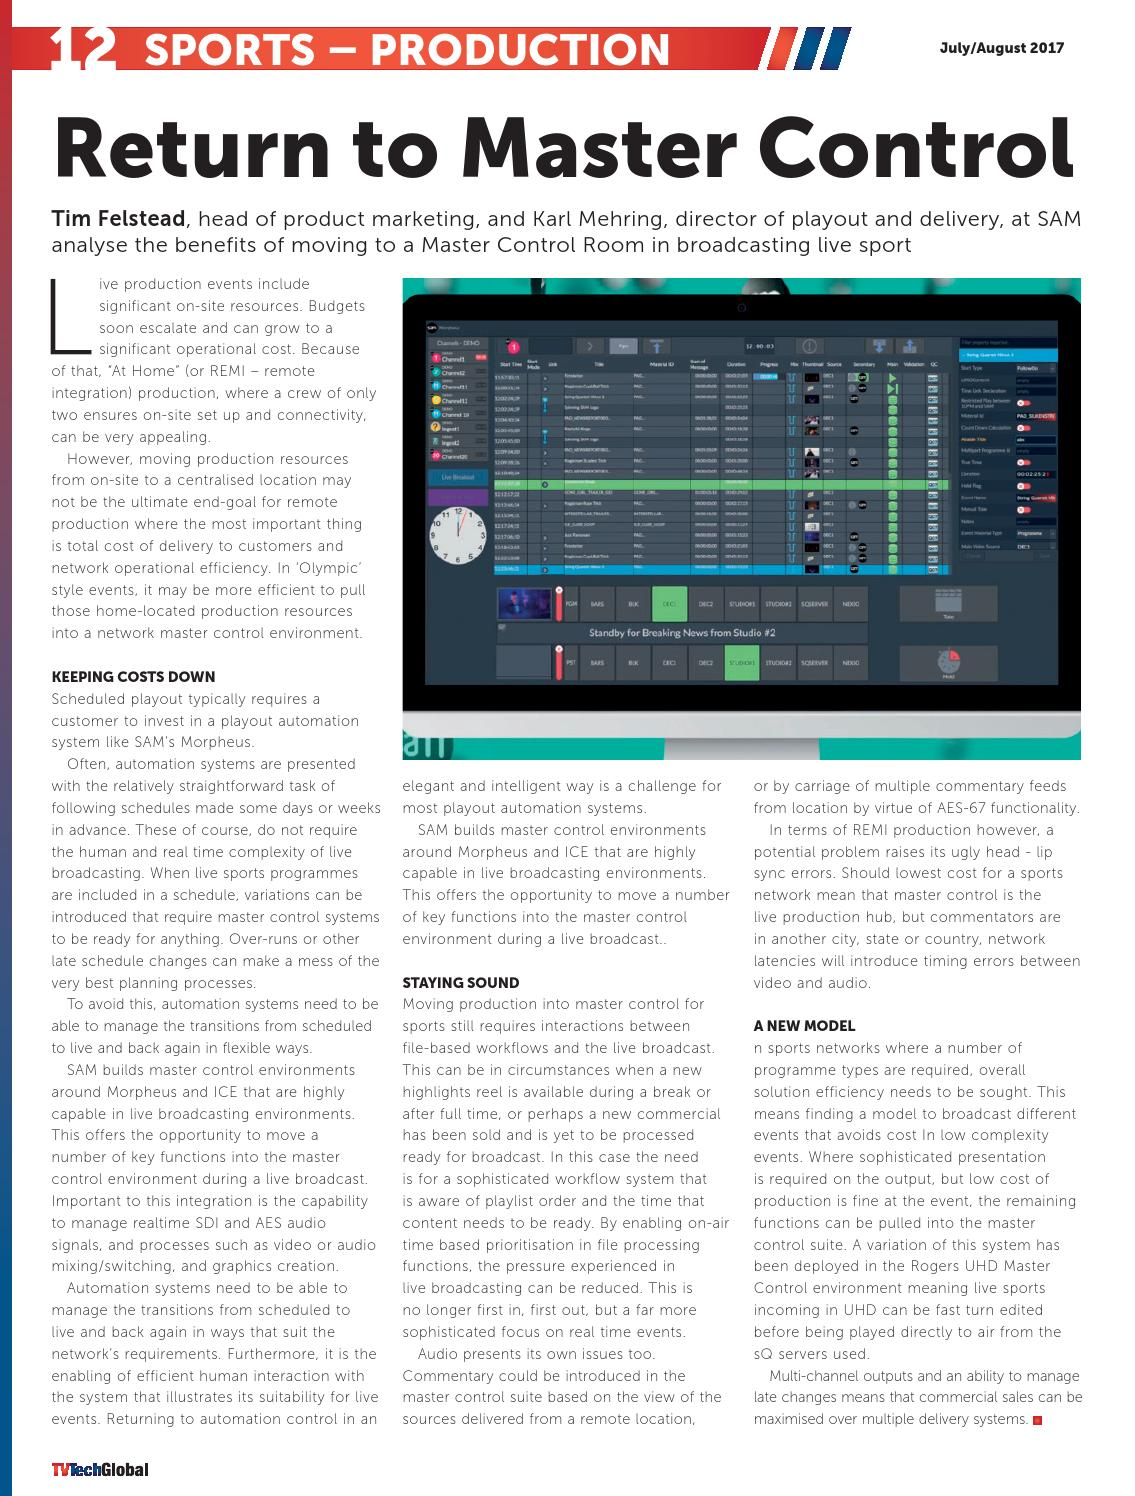 TV Tech Global July/August 2017 by Future PLC - issuu